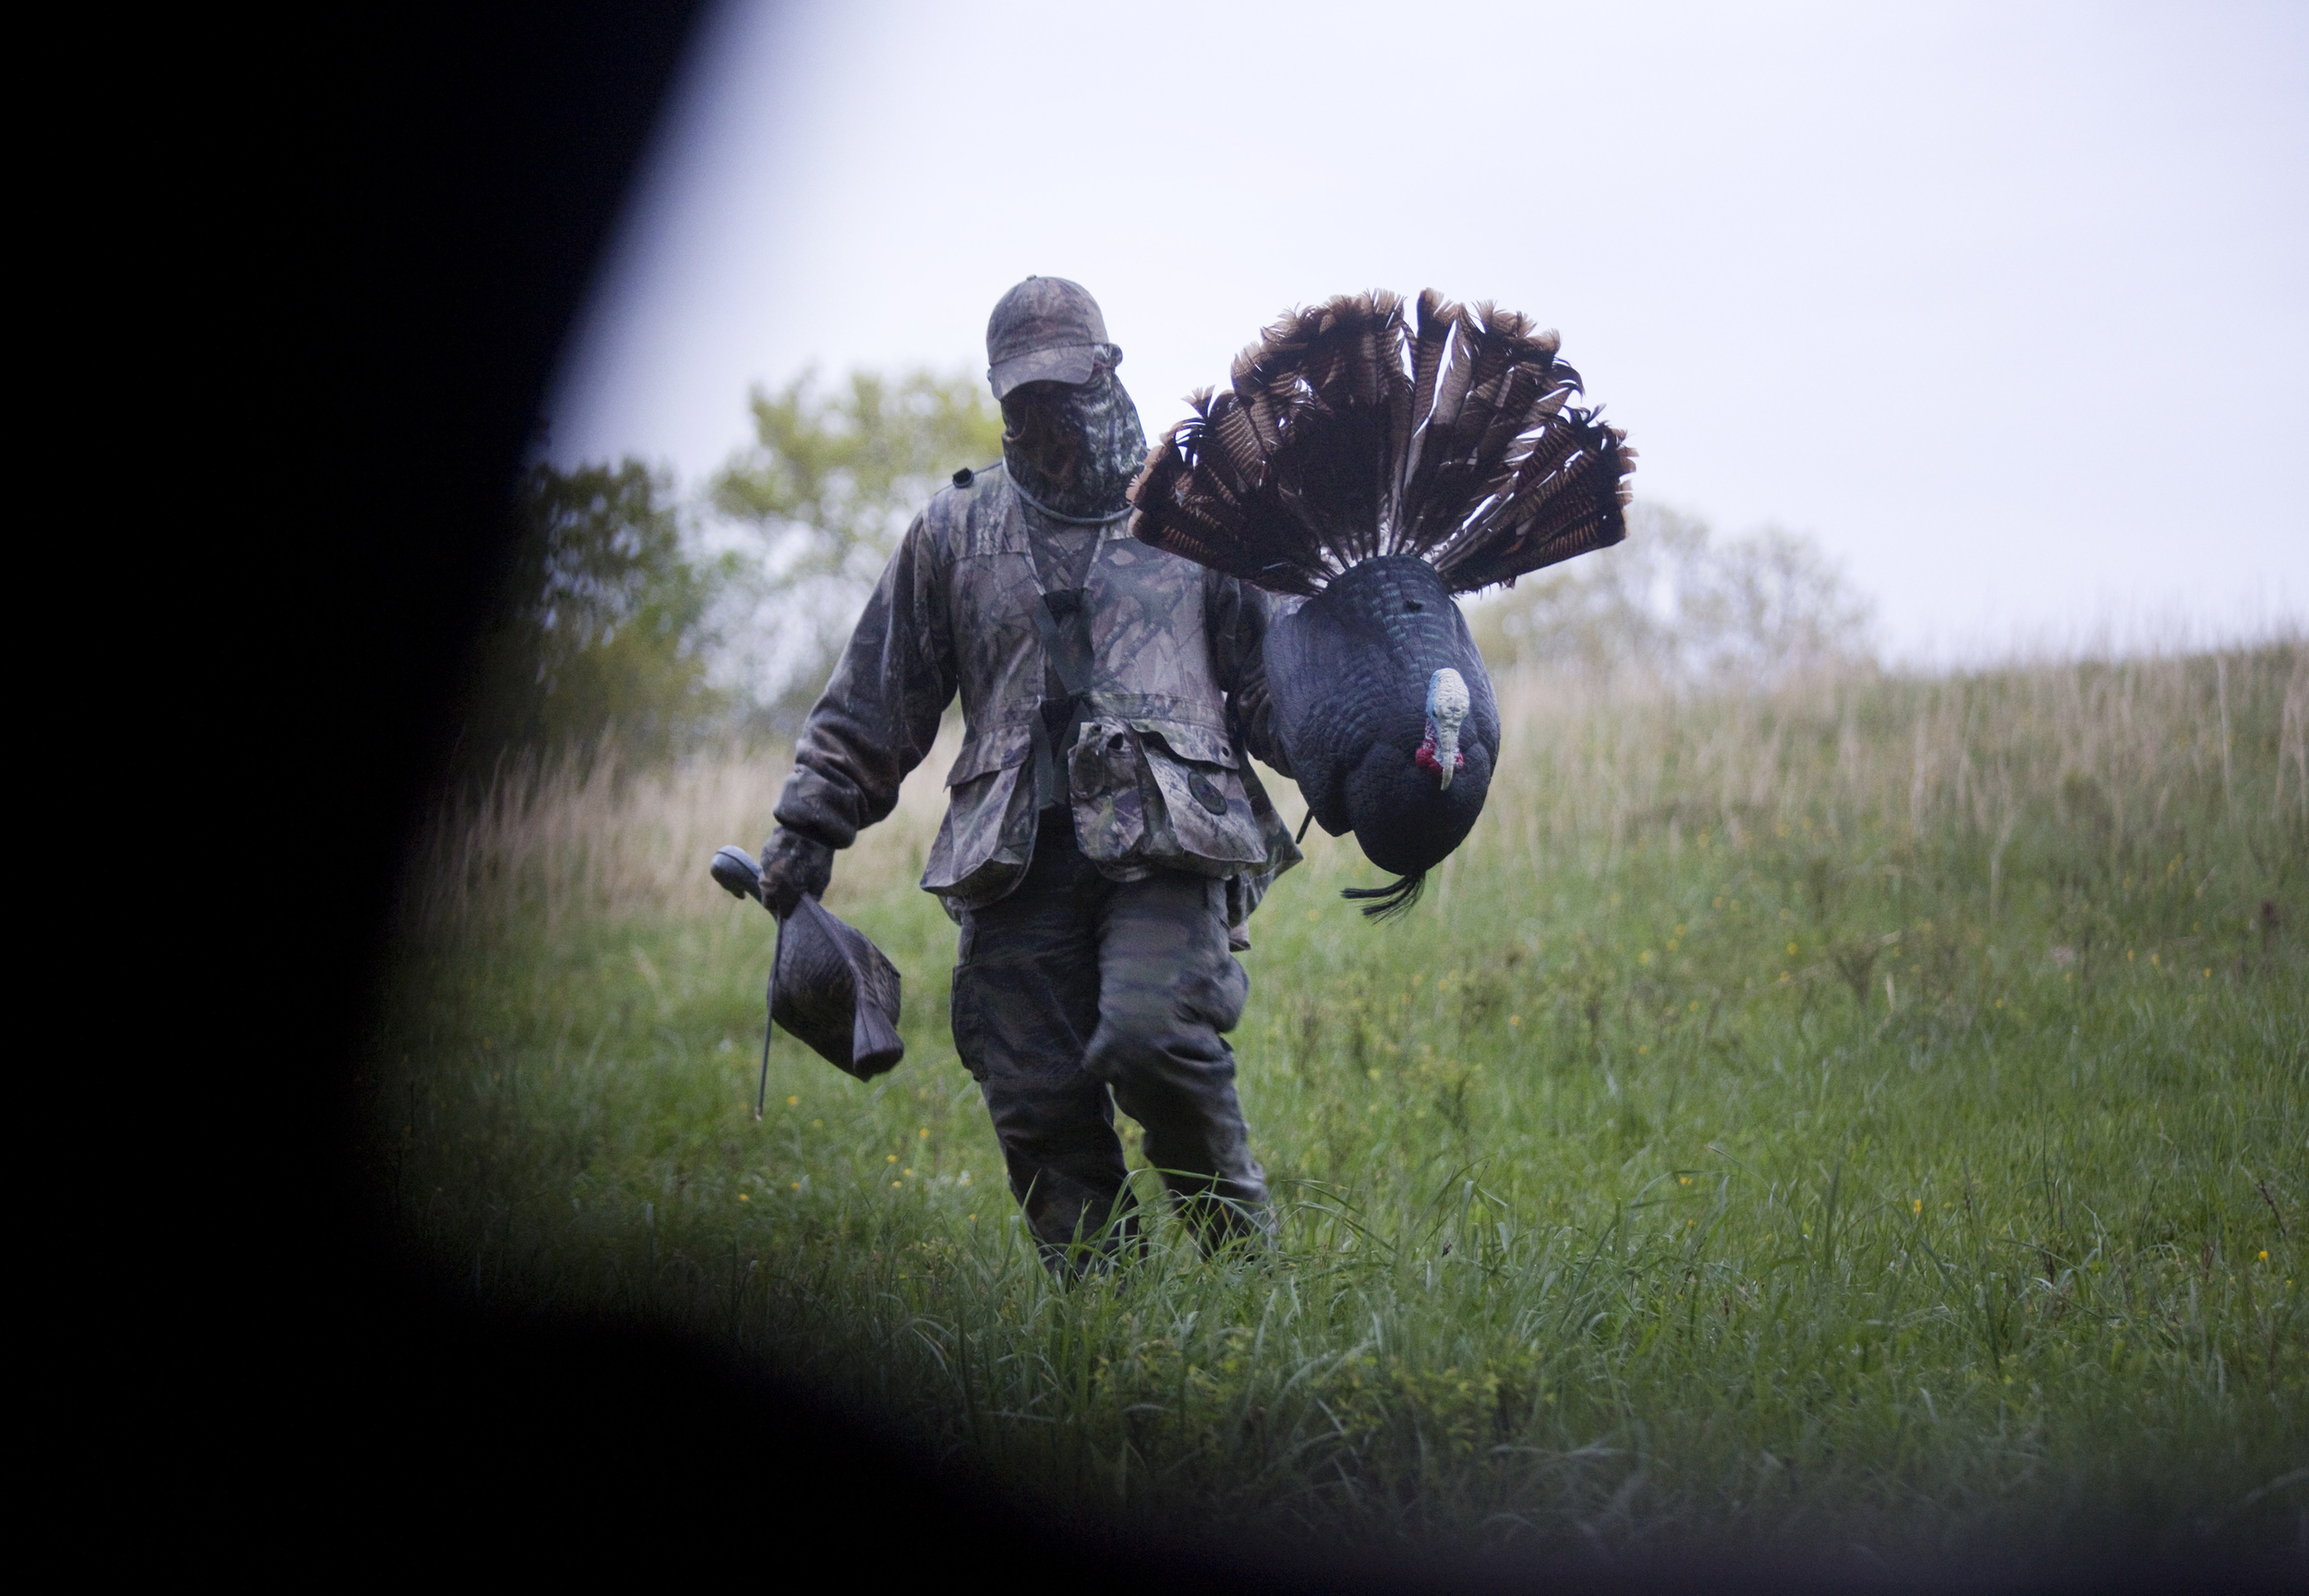 Steve Davenport of Bedford moves the decoys and gets ready to pack up and move to another location. Davenport sat outside in the rain for the entire hunt using a box call trying to entice a gobbler.